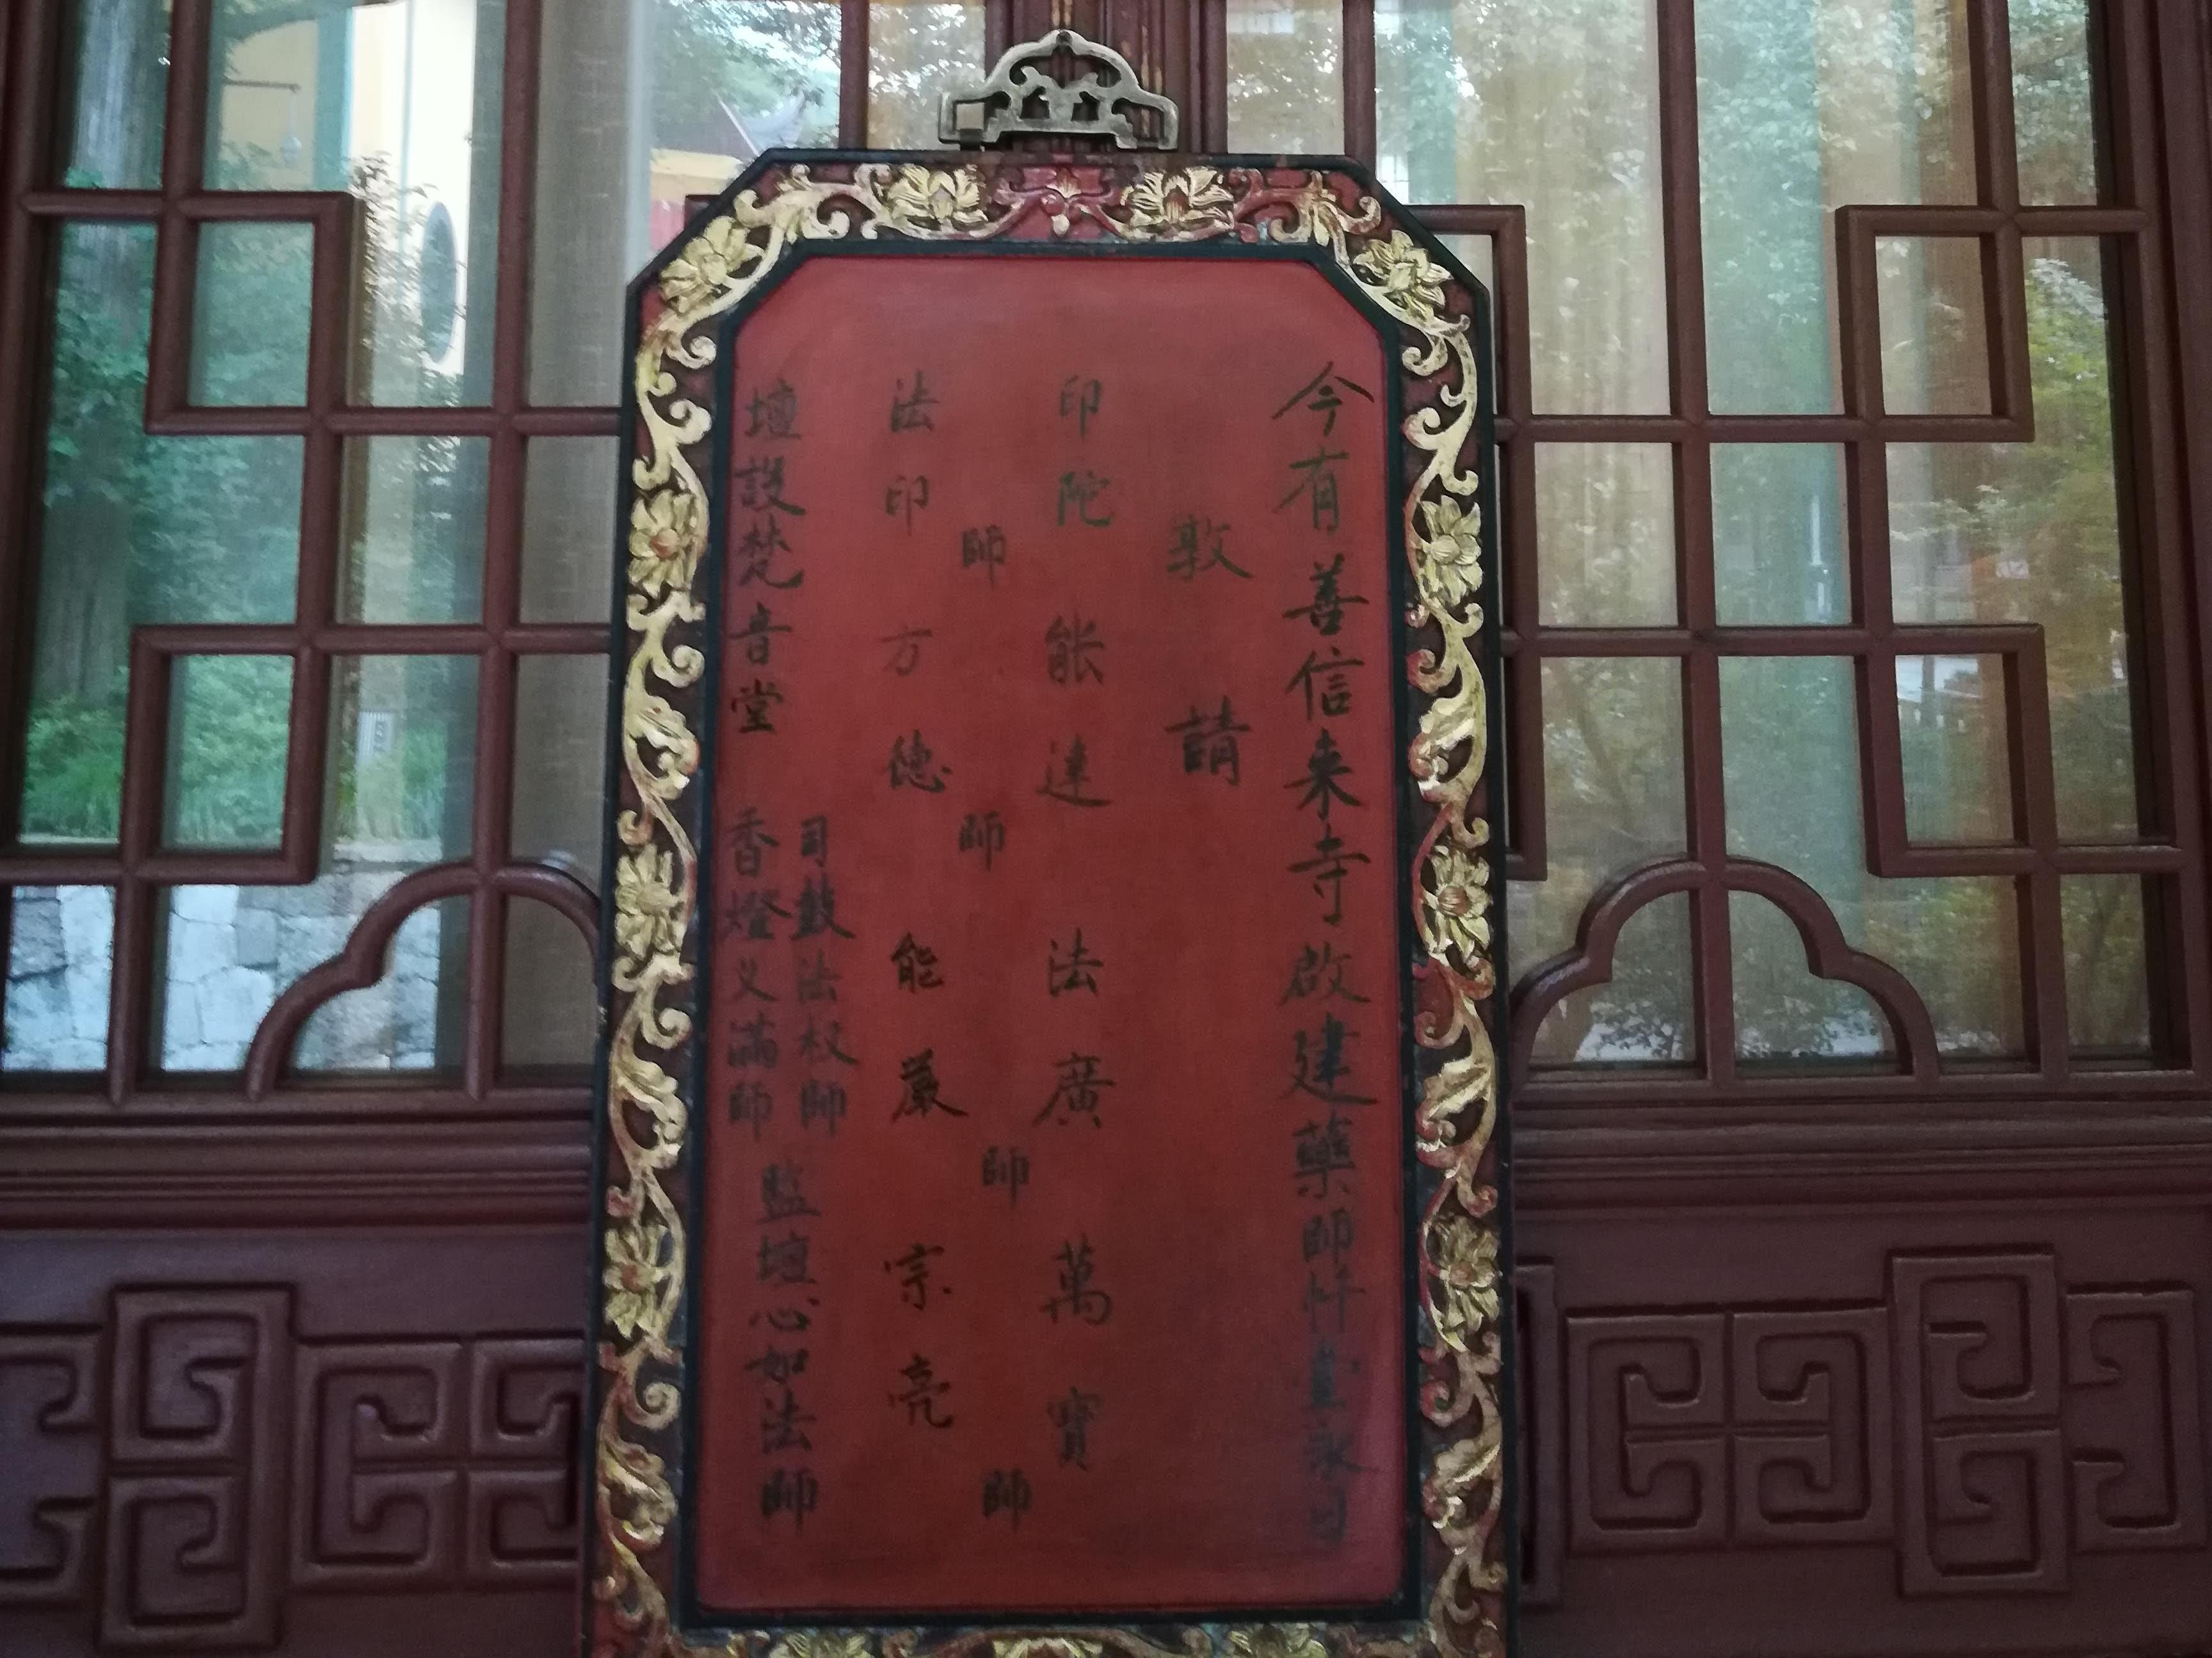 A close-up of Lingyin Temple in Hangzhou, China